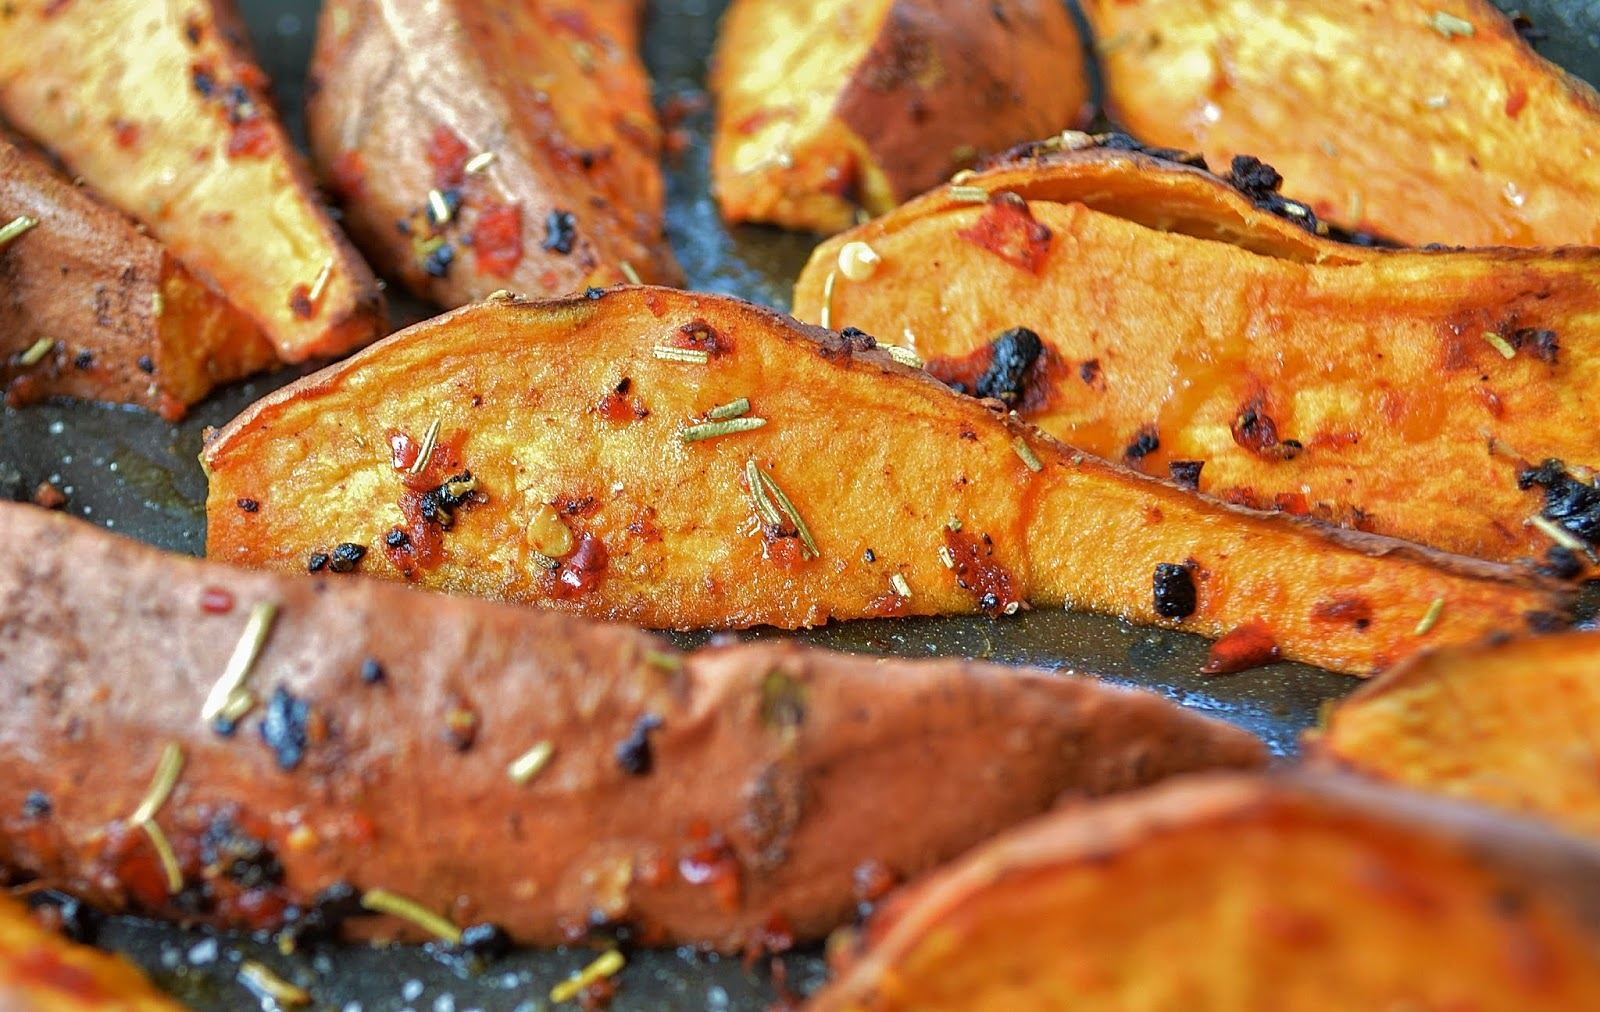 Roasted Sweet Potato Wedges with Black Garlic, Chilli & Rosemary